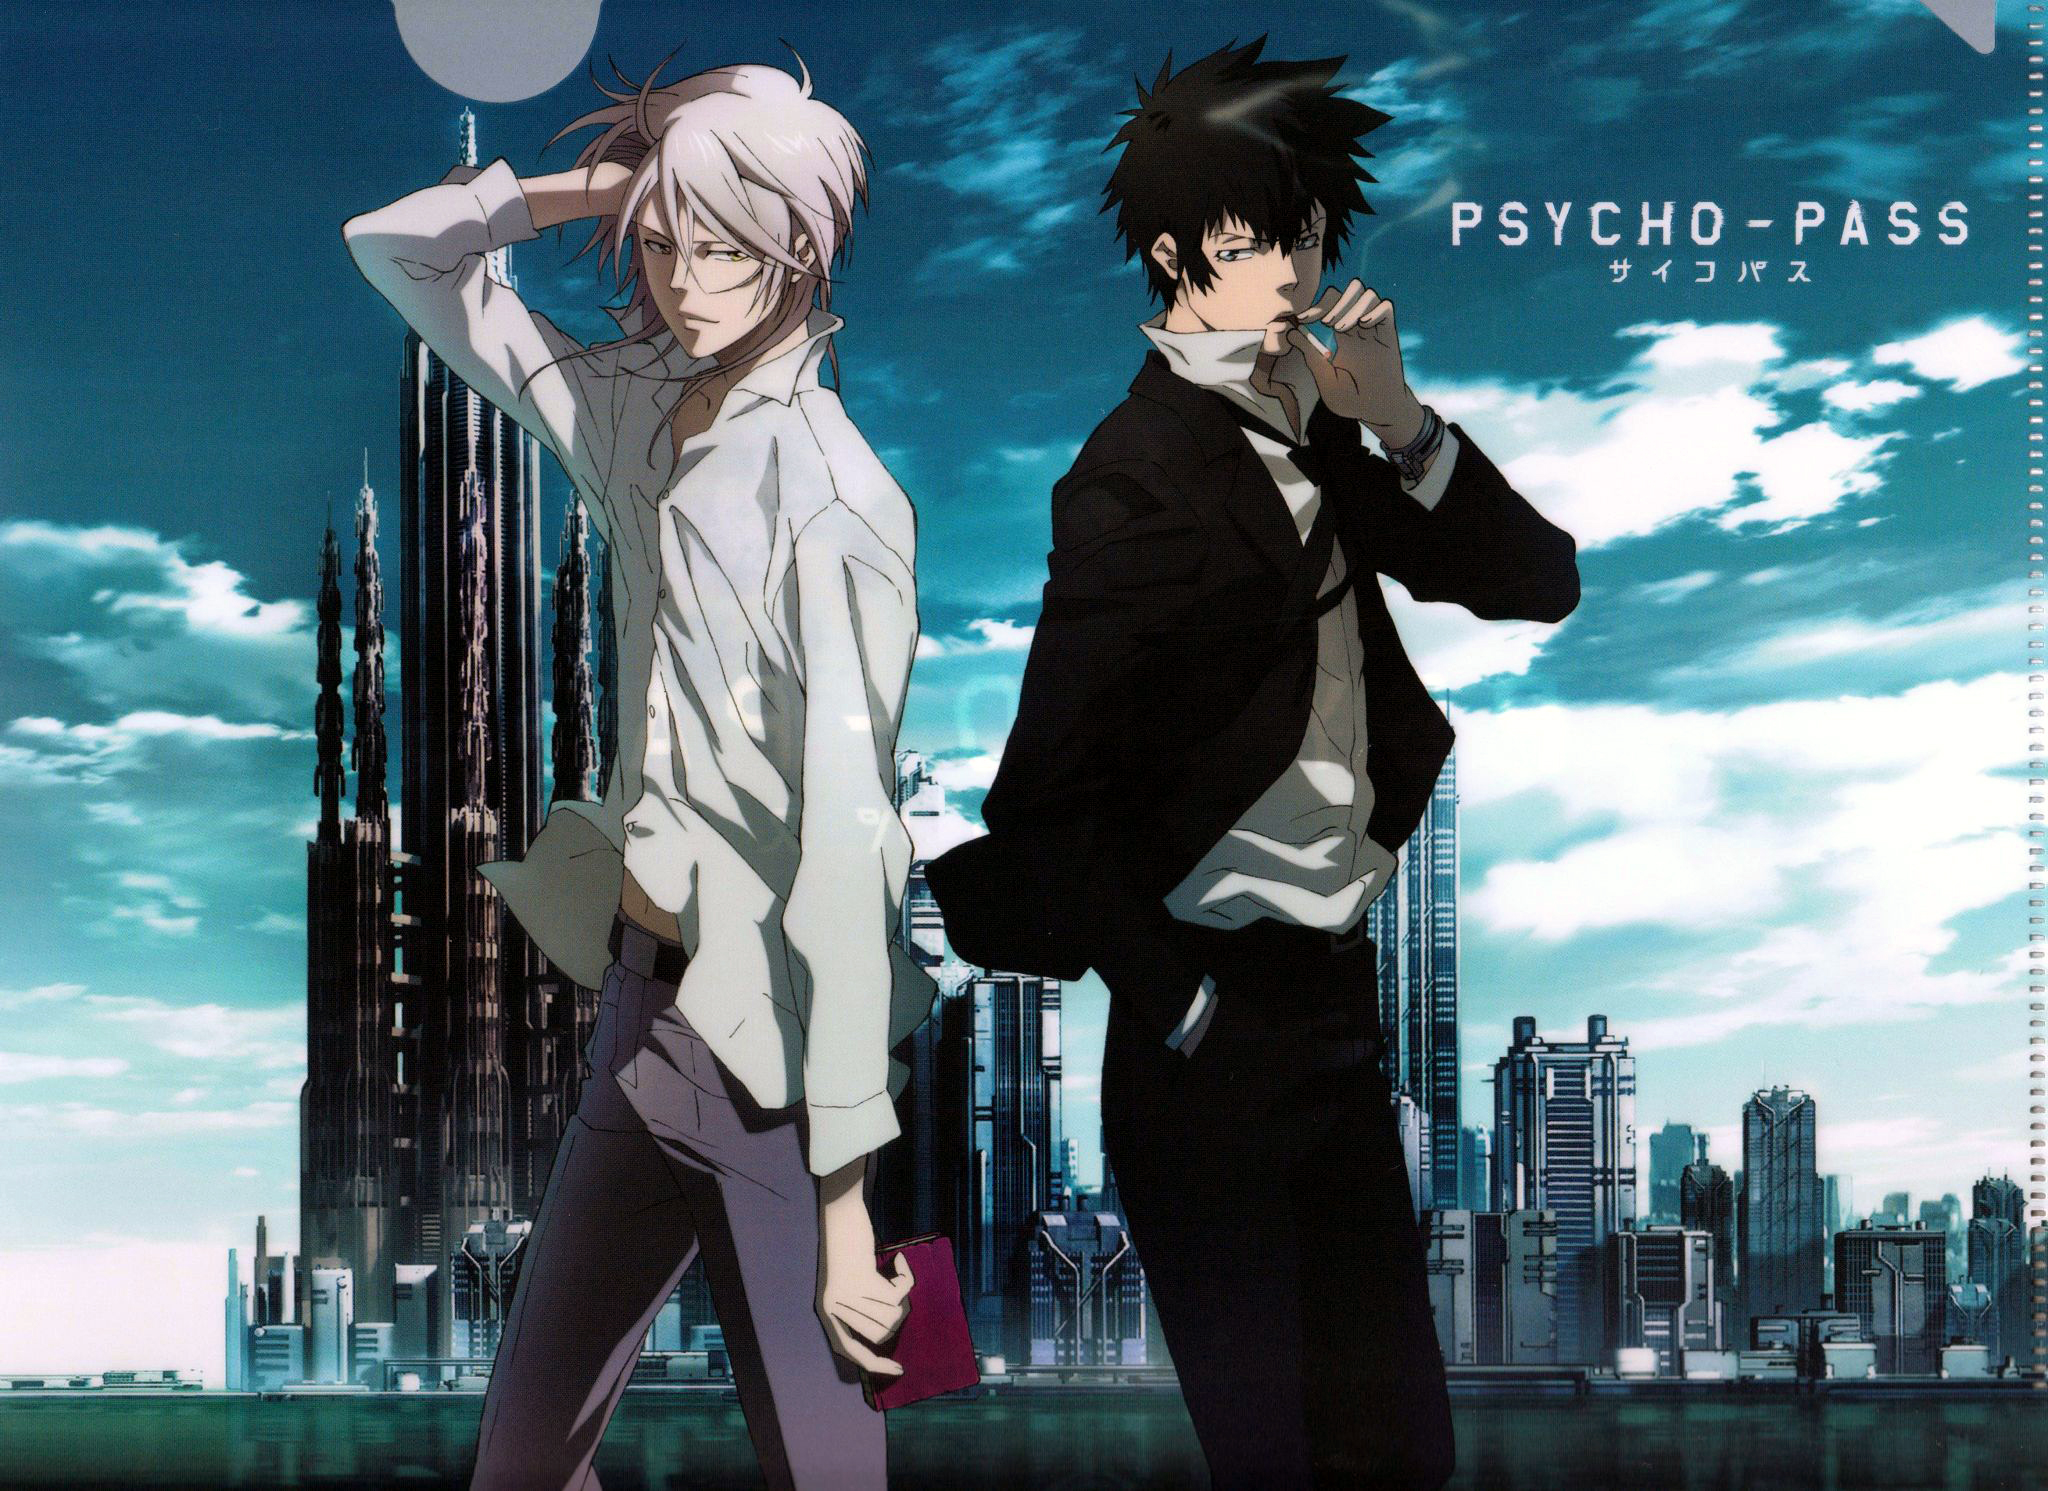 Watch Psycho Pass Season 2 8 Widescreen Wallpaper